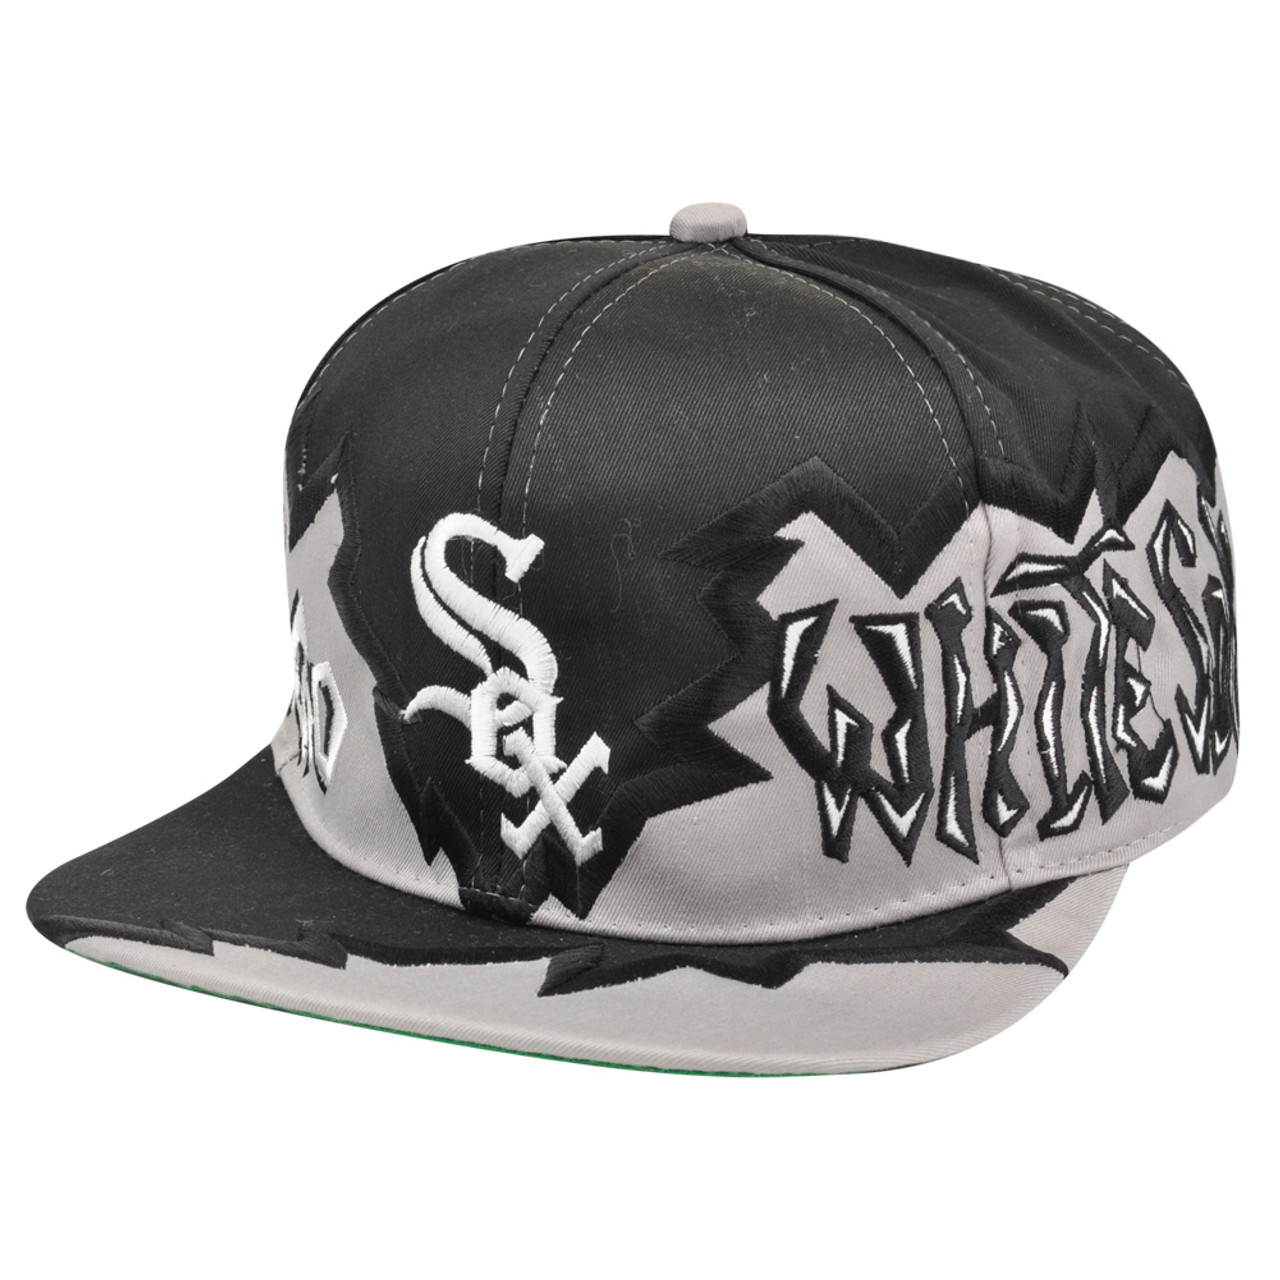 5434f109086 MLB Chicago White Sox Vintage Old School Snapback Flat Bill Hat Cap Dead  Stock - Cap Store Online.com